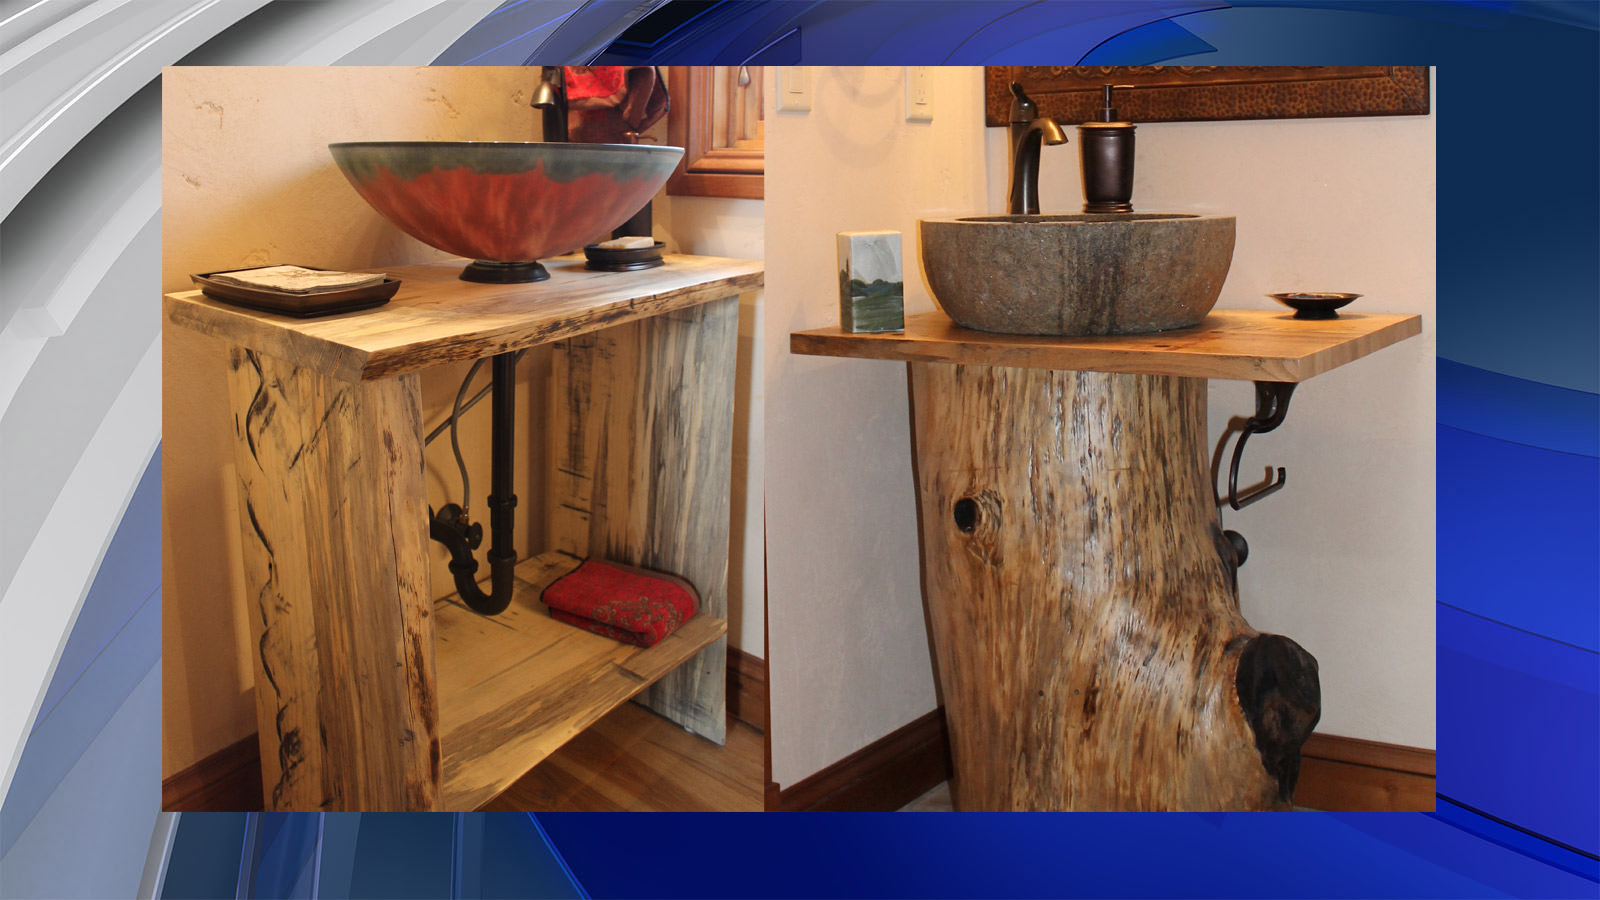 Bathroom vanities from reclaimed burned trees (credit: Jennicca Mabe)